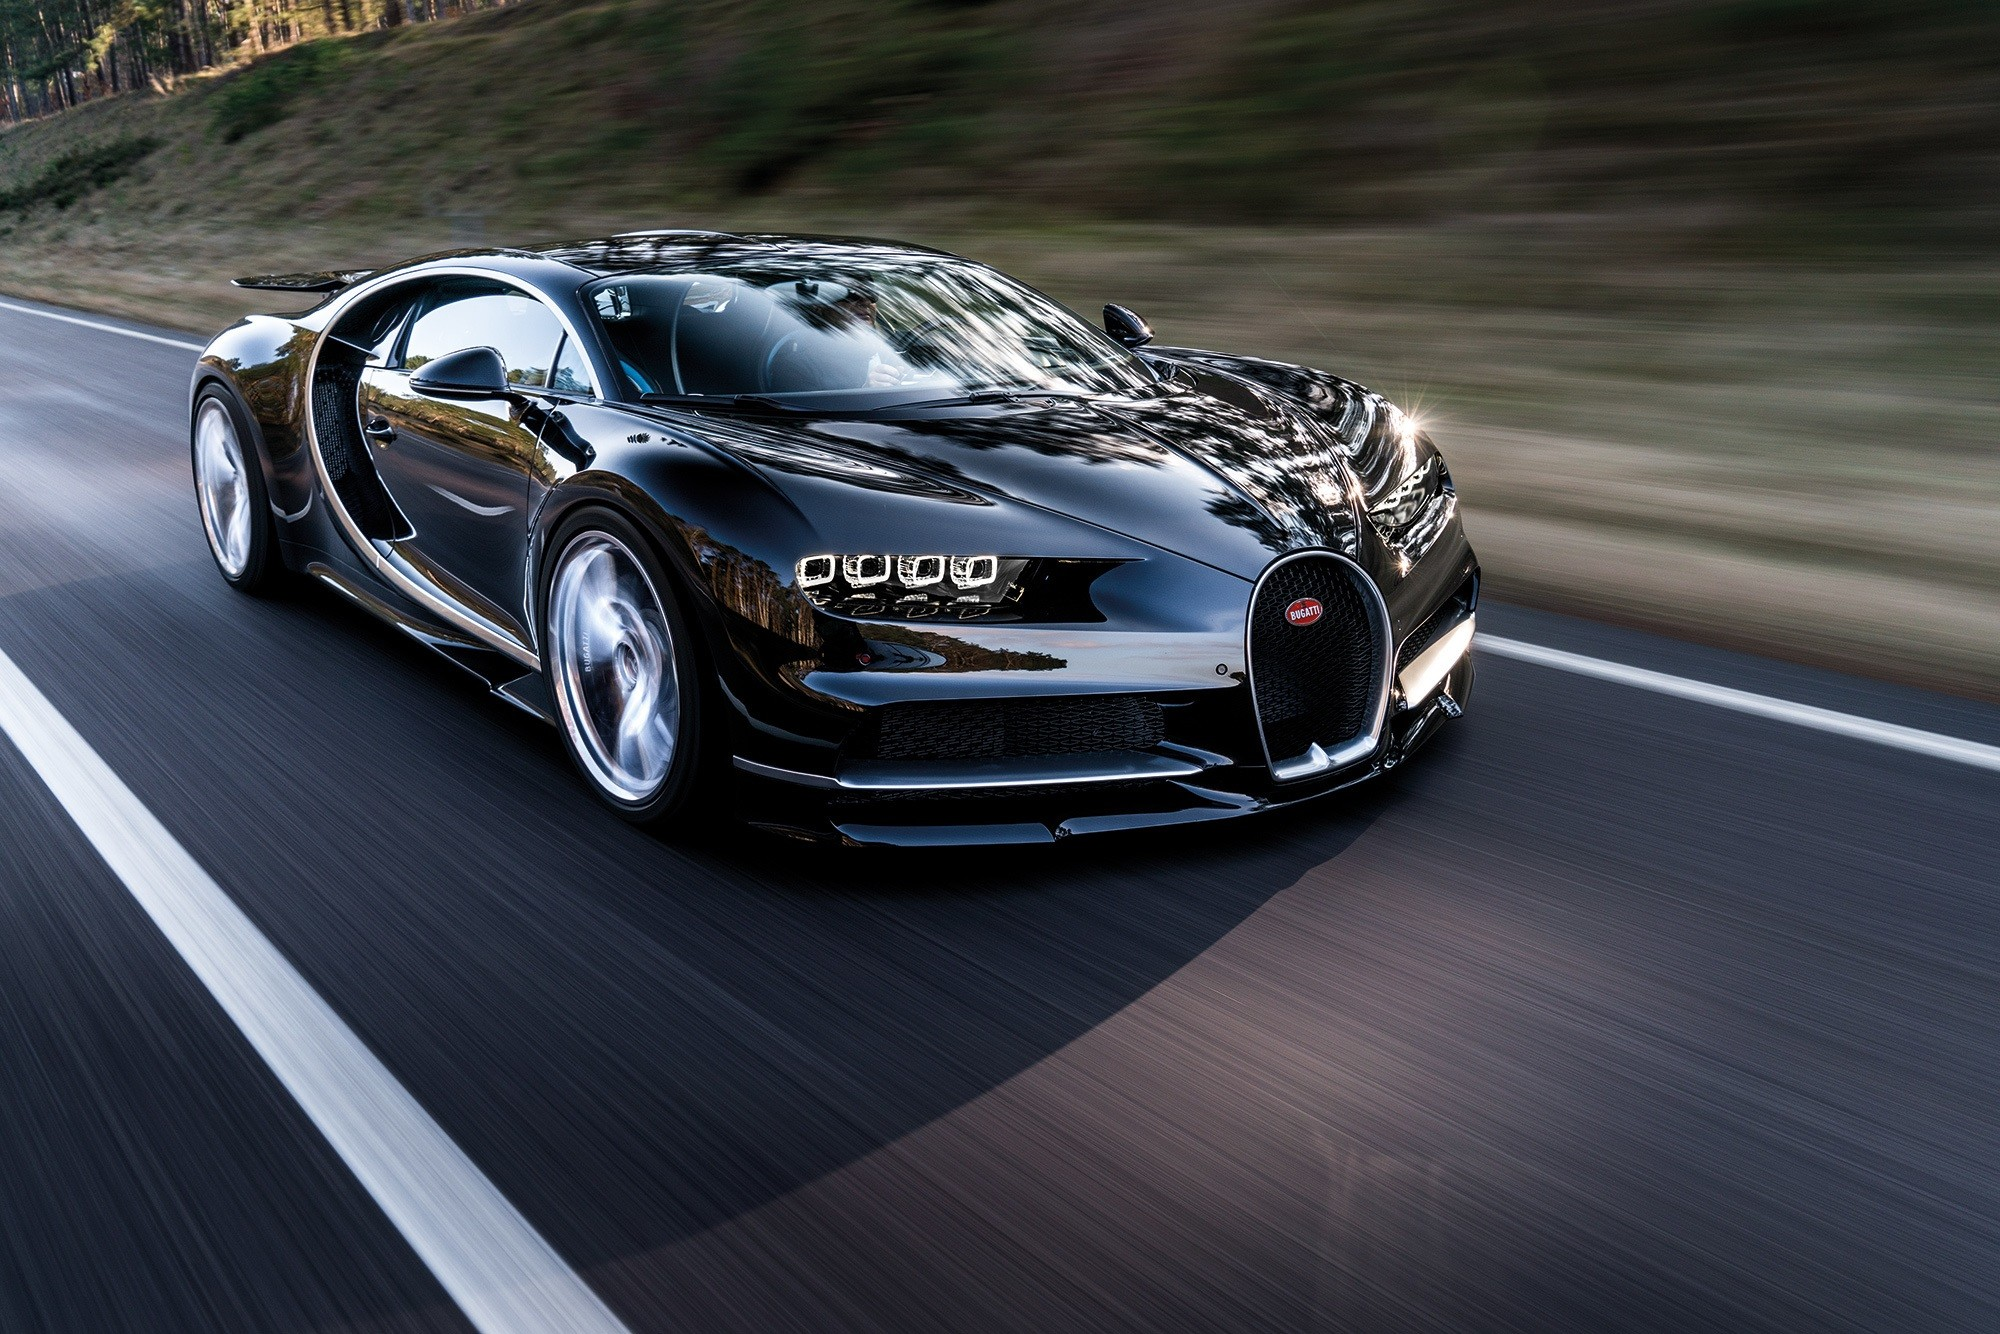 IPhone 5 5C 5S 1392 744 IPad Wallpaper Source Supercars 67 Images